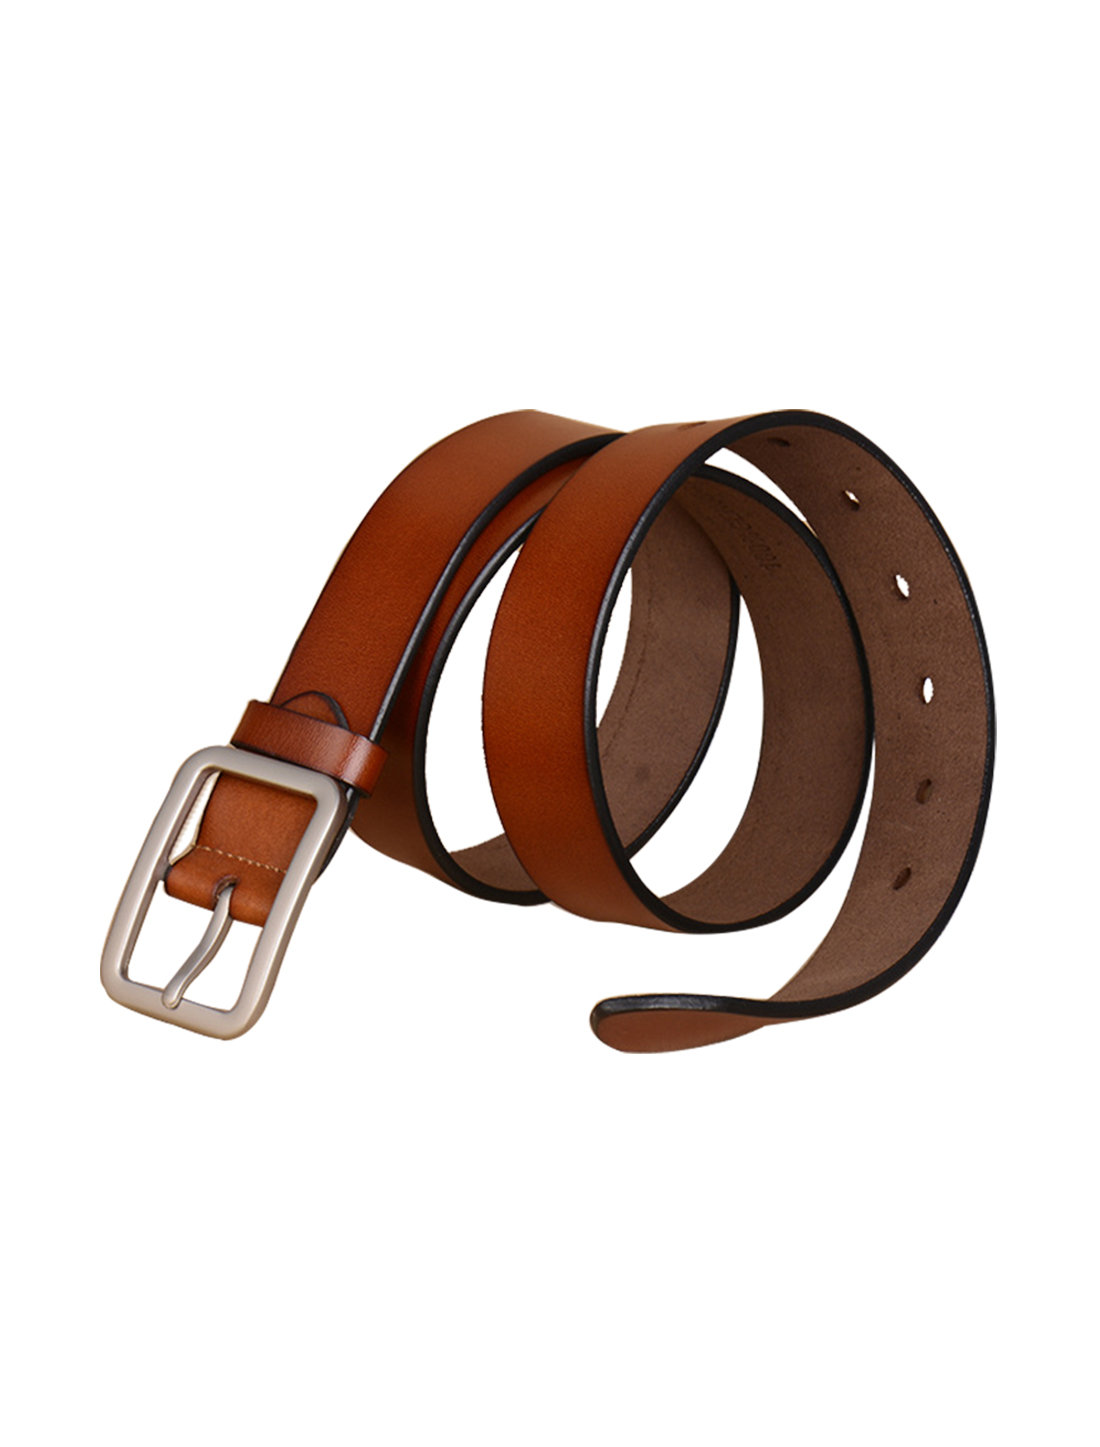 Mens Fashion Single Pin Buckle Leather Belt 33mm Width 1 1/4 Brown 120cm